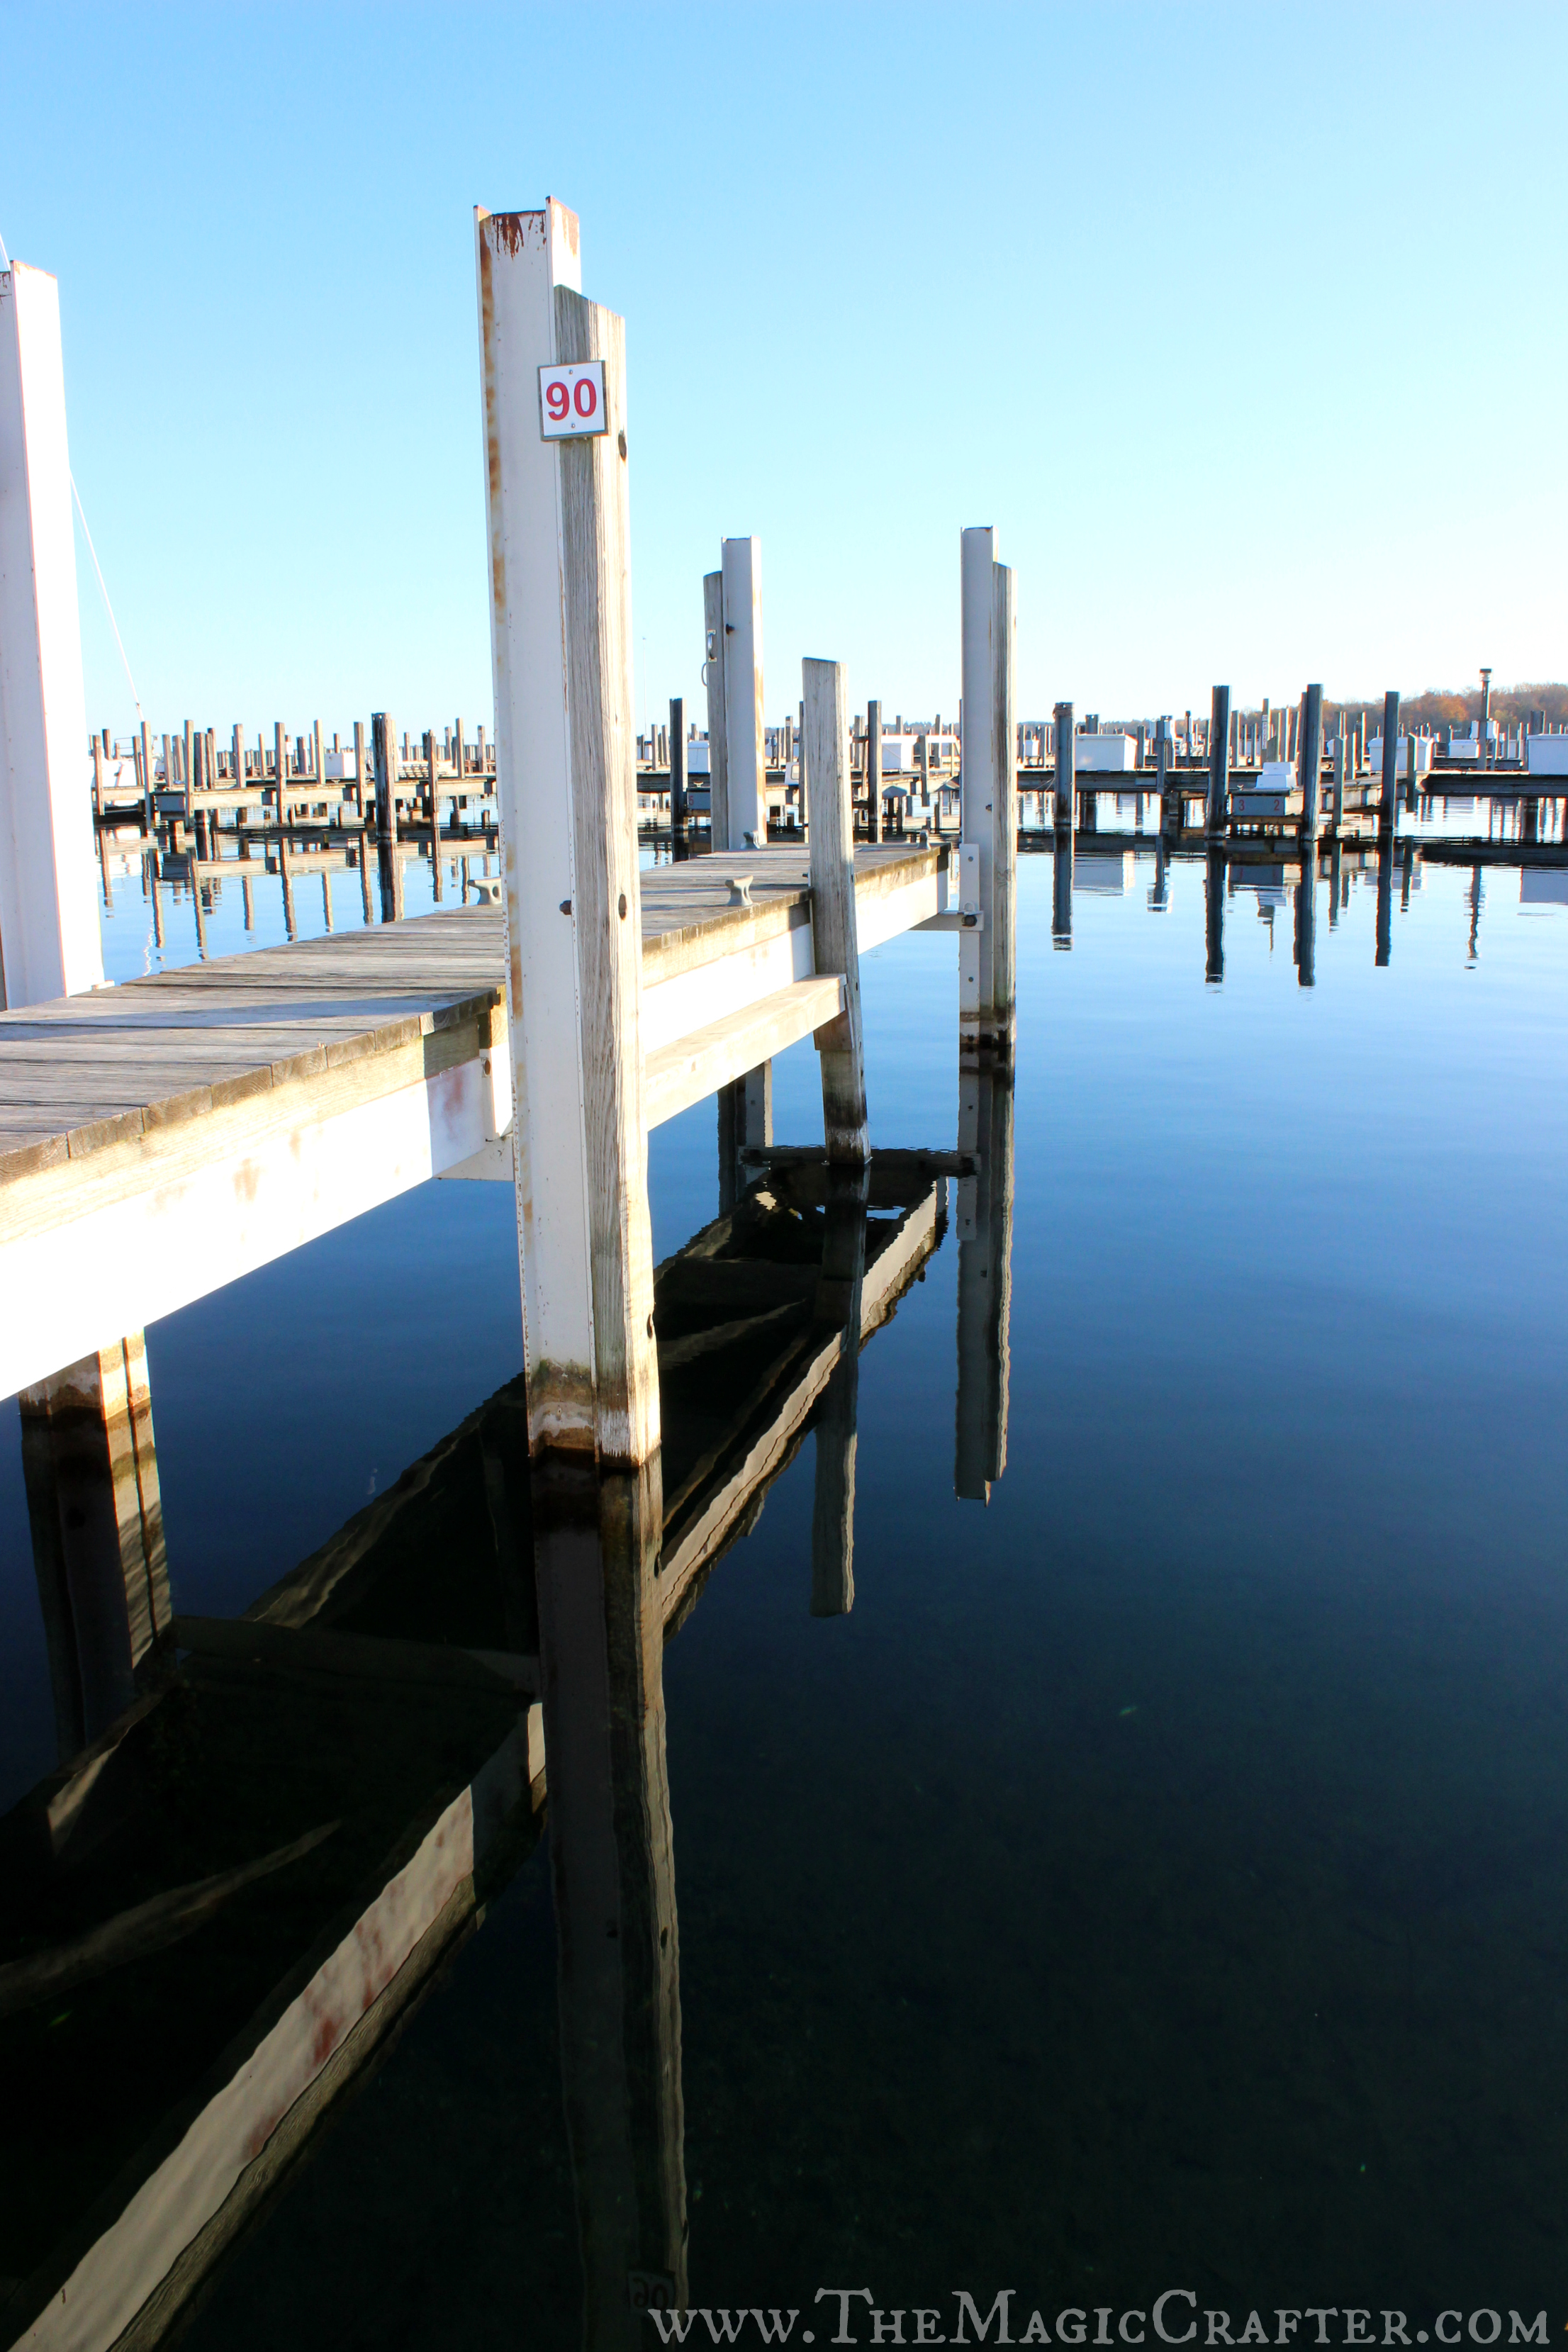 The water on the left side of the marina was much calmer than in the other areas of the marina. This reflection is almost a perfect duplicate of the dock it imitates.